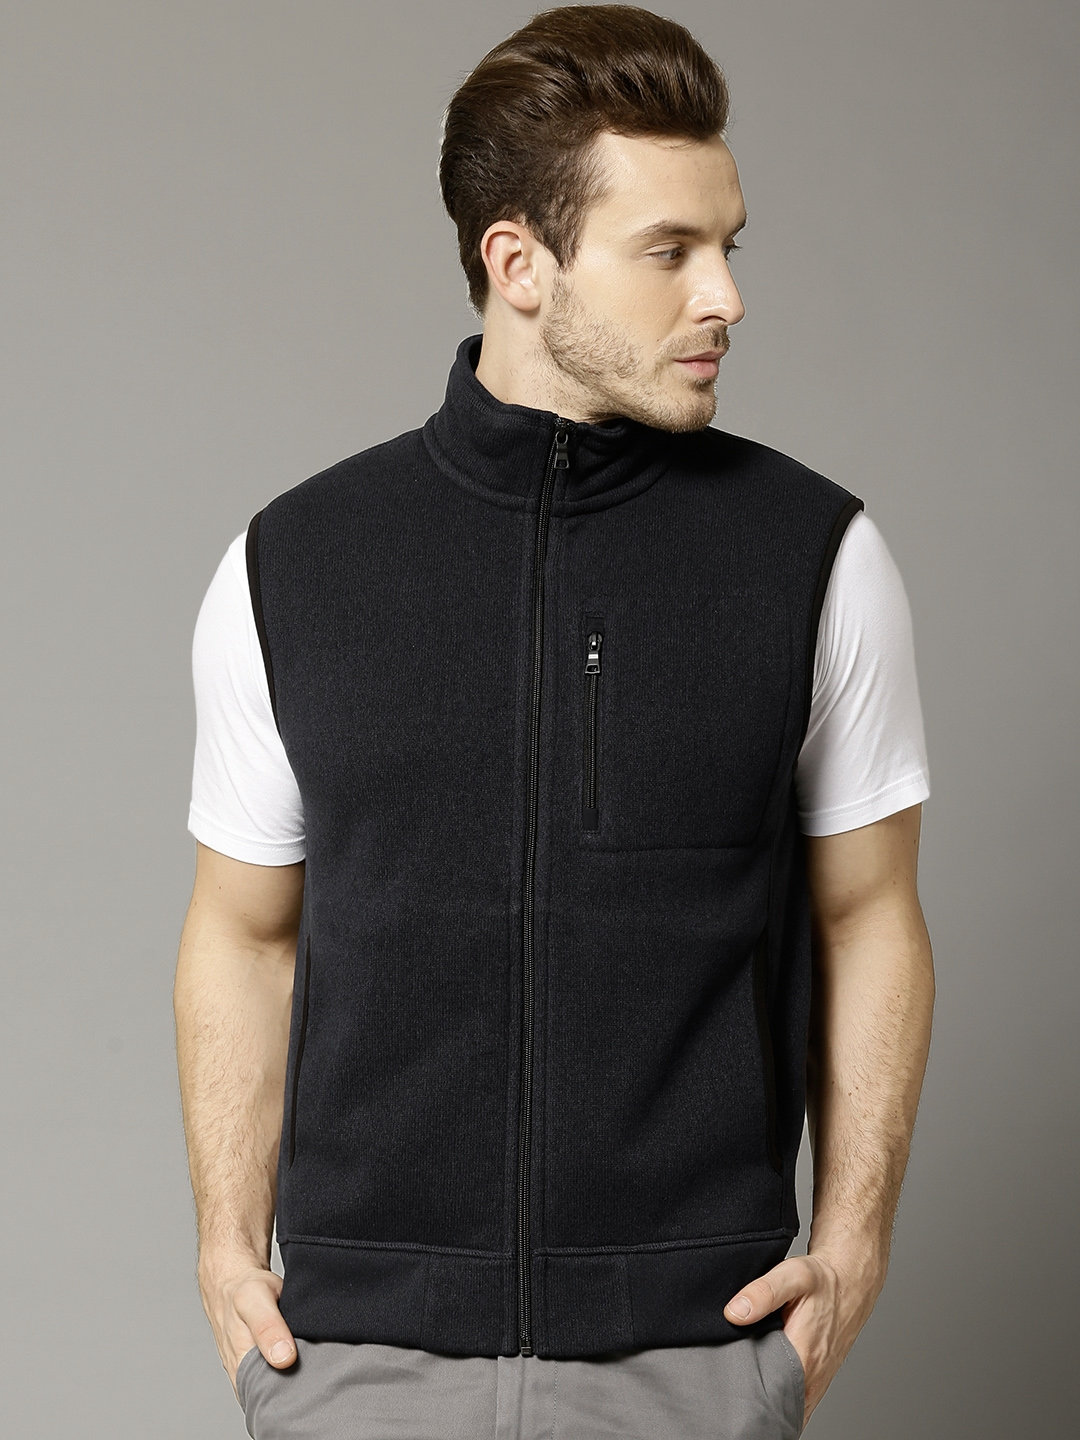 Buy Marks & Spencer Navy Sleeveless Fleece Jacket - Jackets for ...